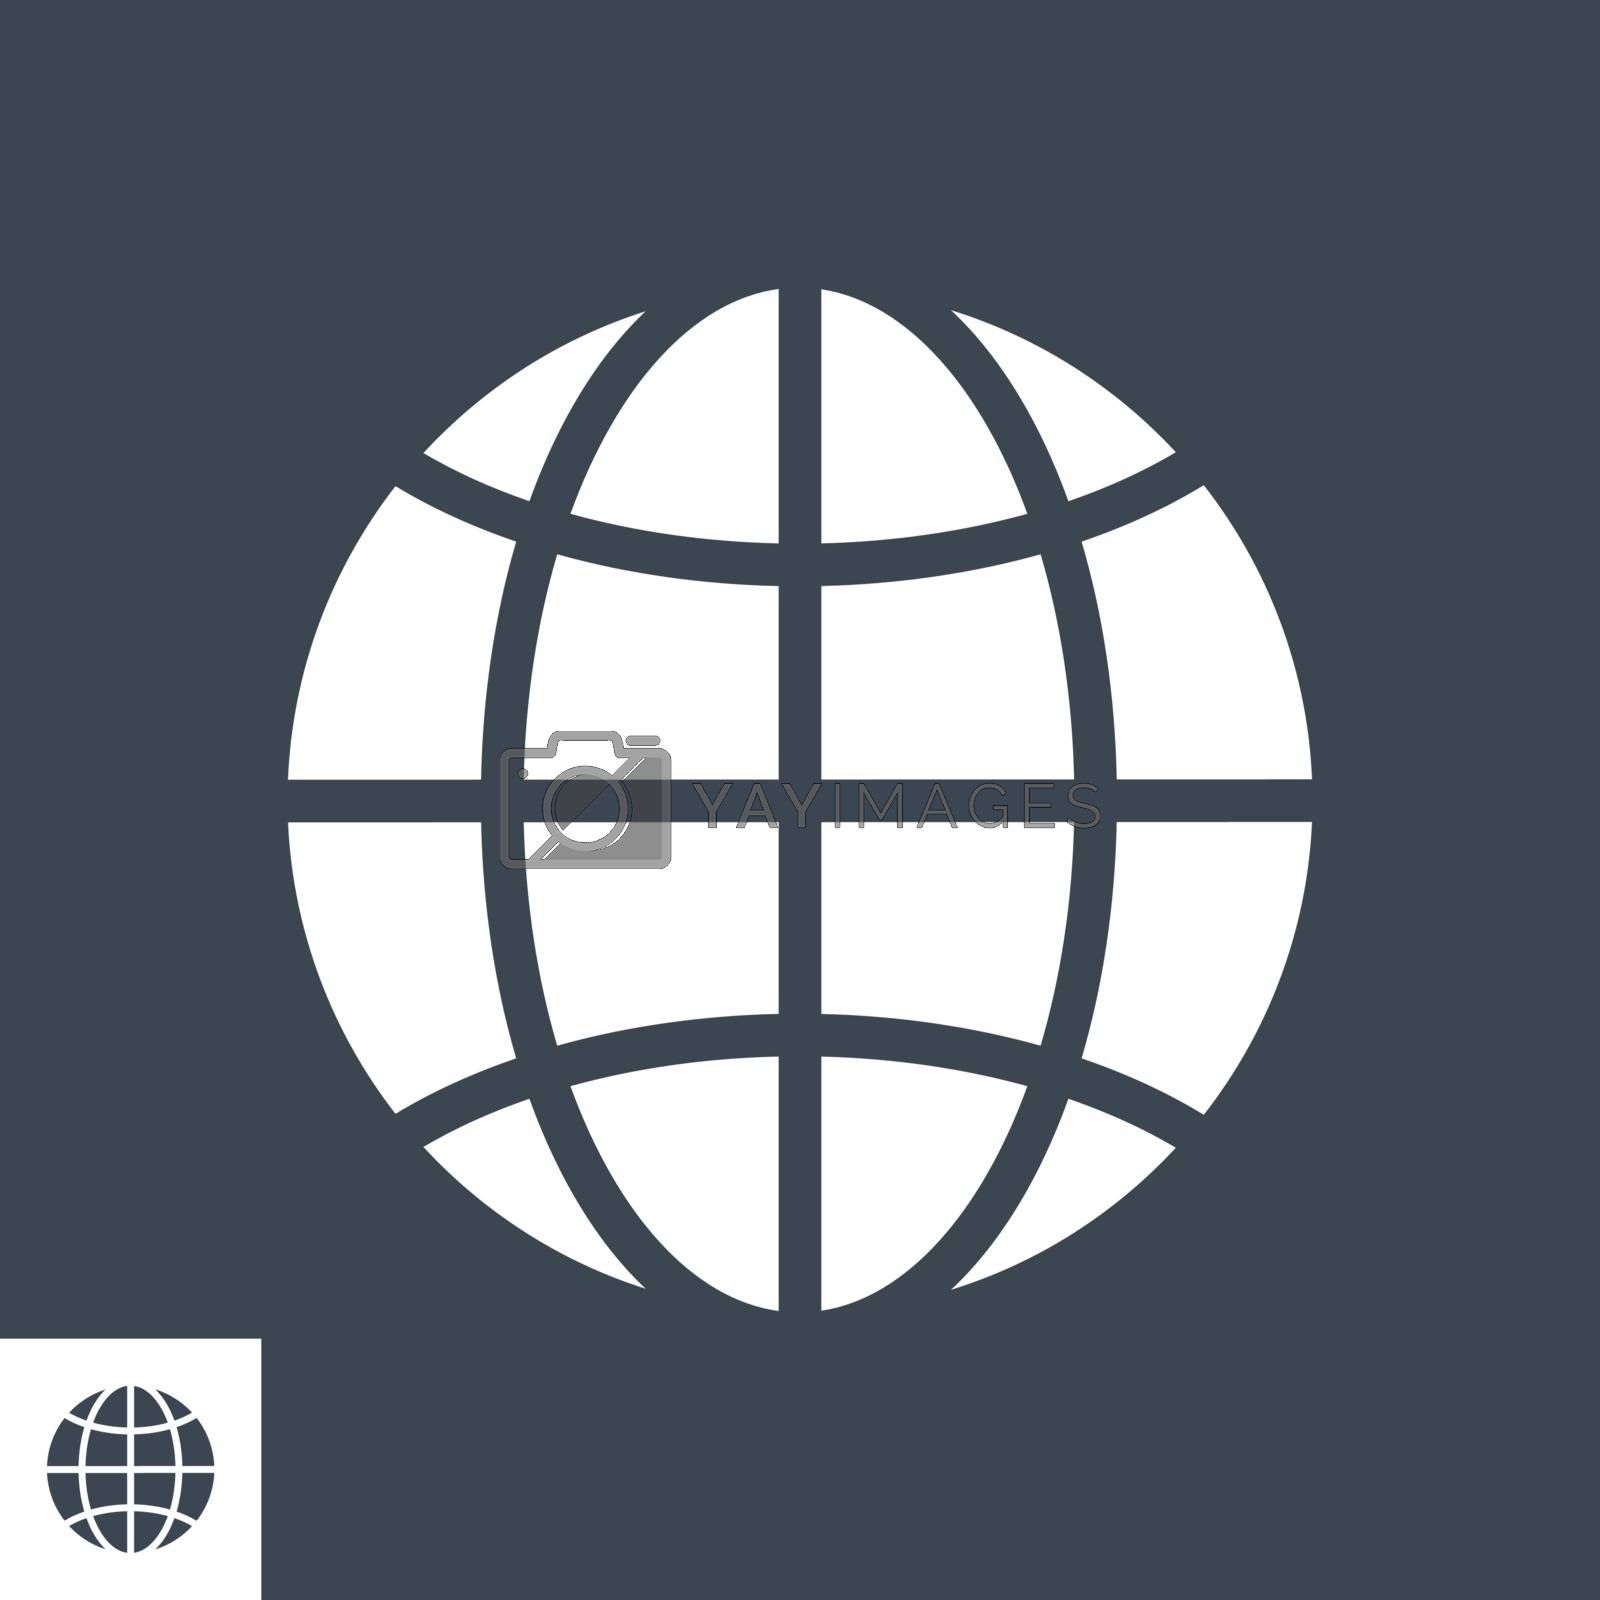 Globe Related Vector Glyph Icon. Isolated on Black Background. Vector Illustration.